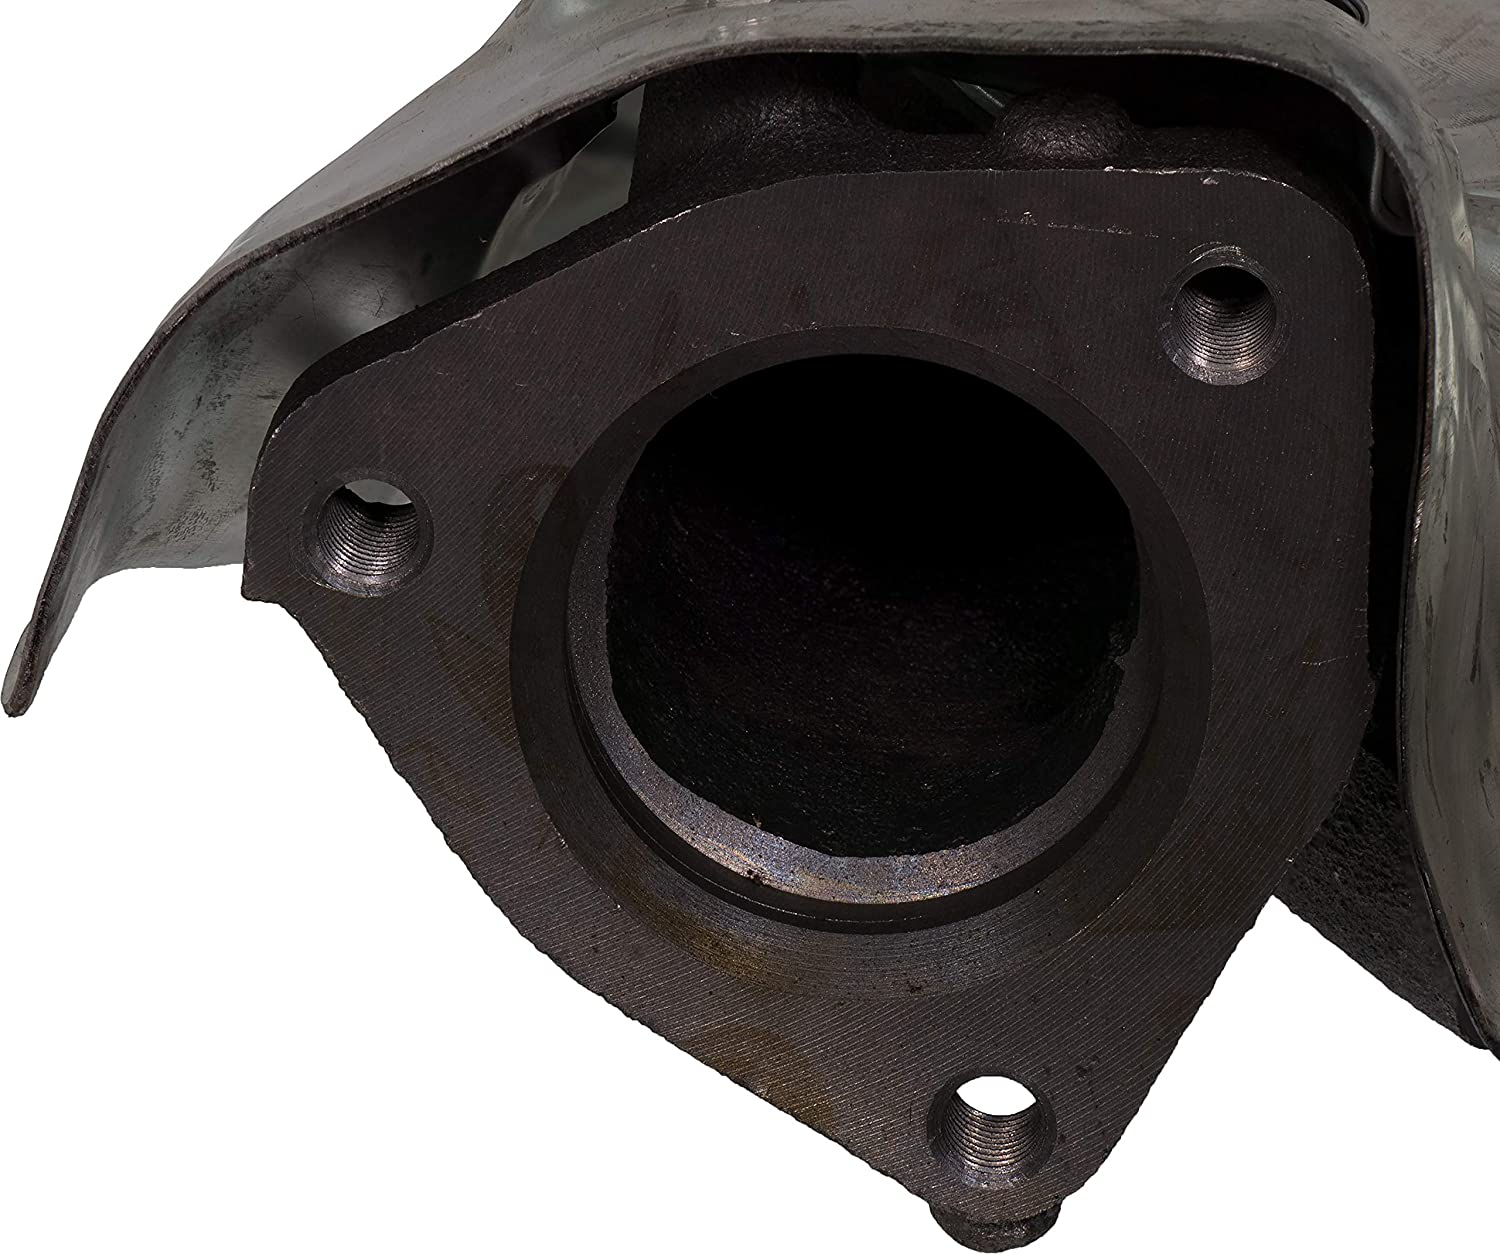 2.4L Engines Only; Replaces 14004-F4500, 14004-F4506 APDTY 14004F4506 Exhaust Manifold Assembly Fits 1998-2001 Nissan Frontier